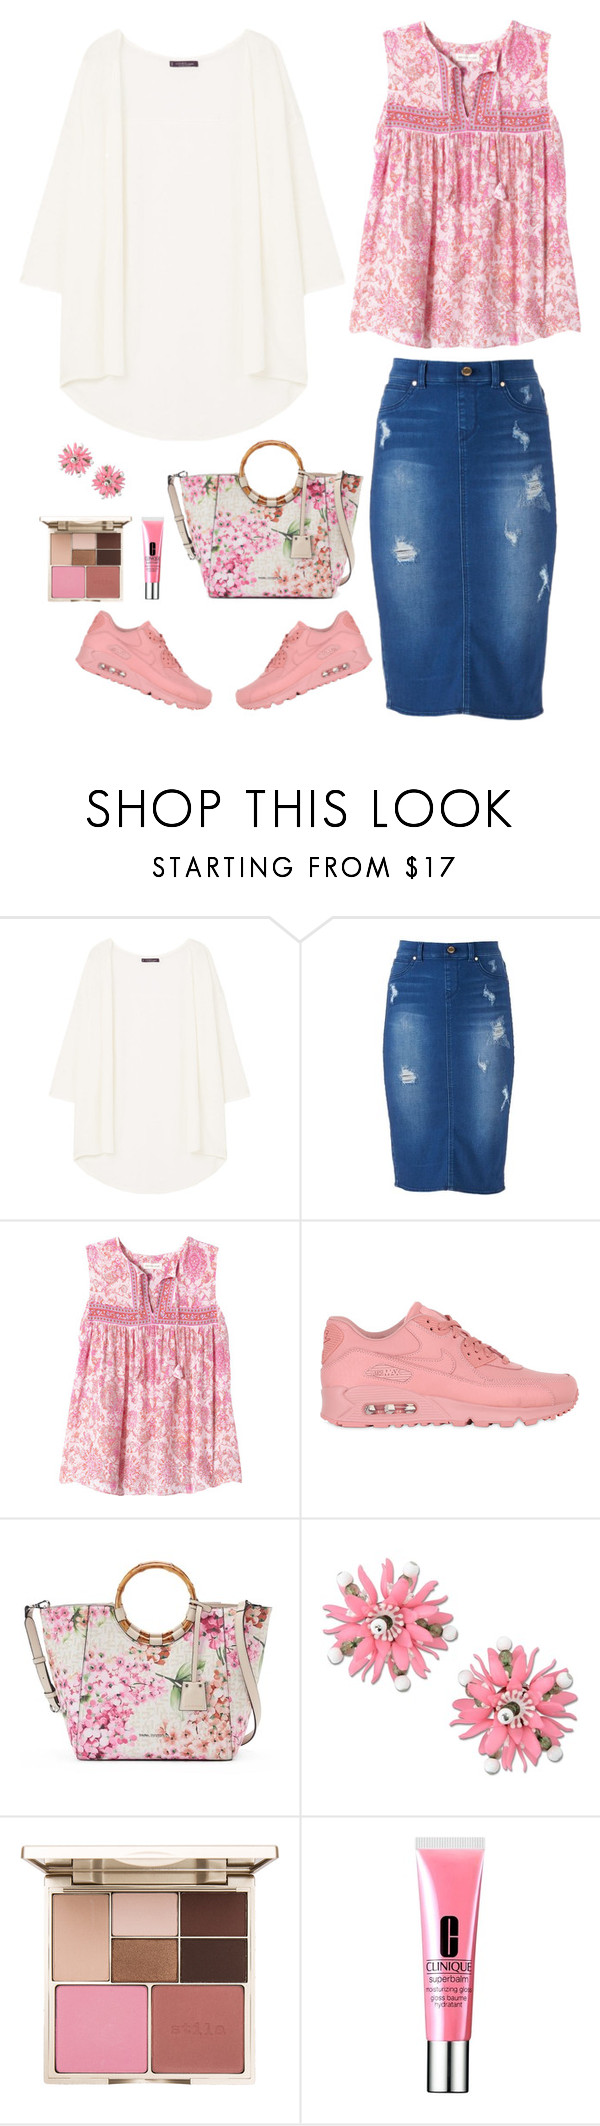 """Pretty Pink"" by musicfriend1 ❤ liked on Polyvore featuring MANGO, Jennifer Lopez, Rebecca Taylor, NIKE, Dana Buchman, Moschino, Stila and Clinique"